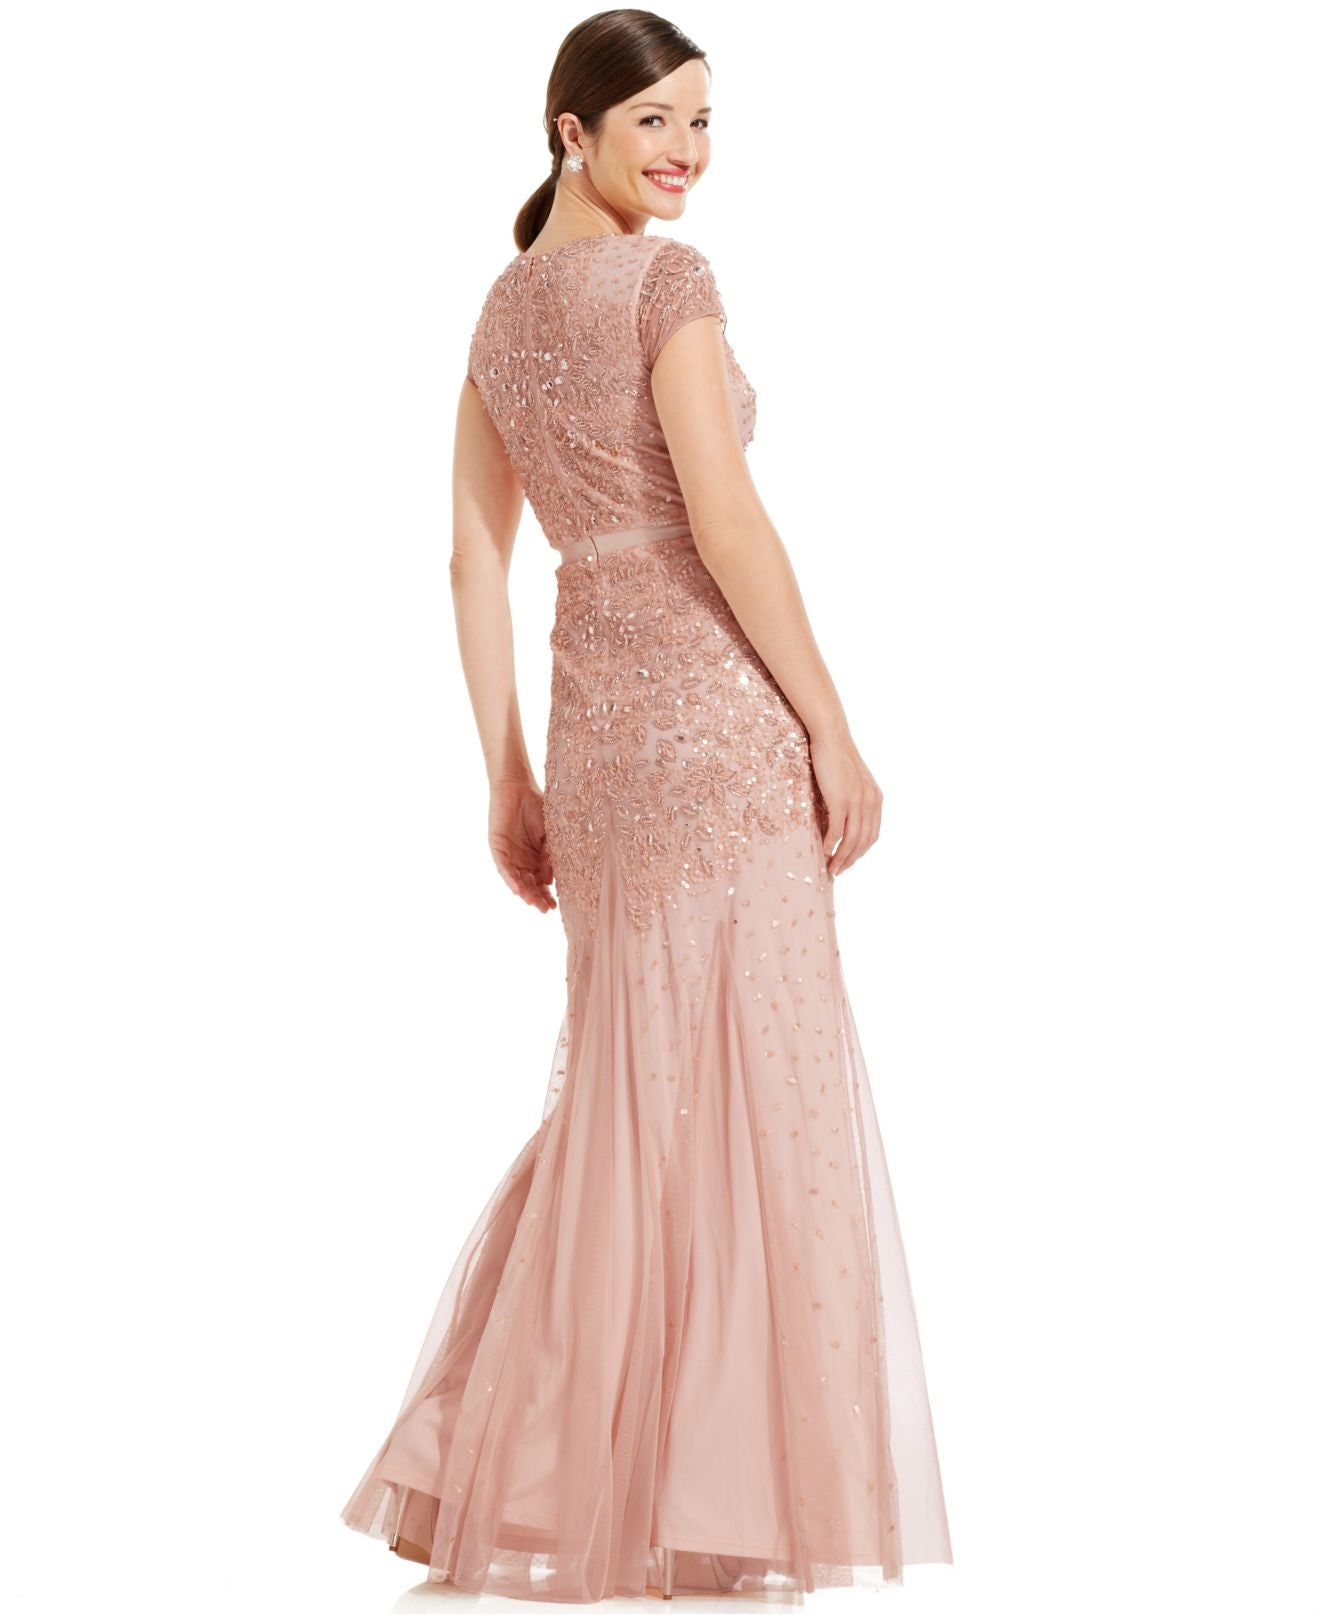 Adrianna Papell Cap-sleeve Beaded Embellished Gown - Blush - Adinas ...